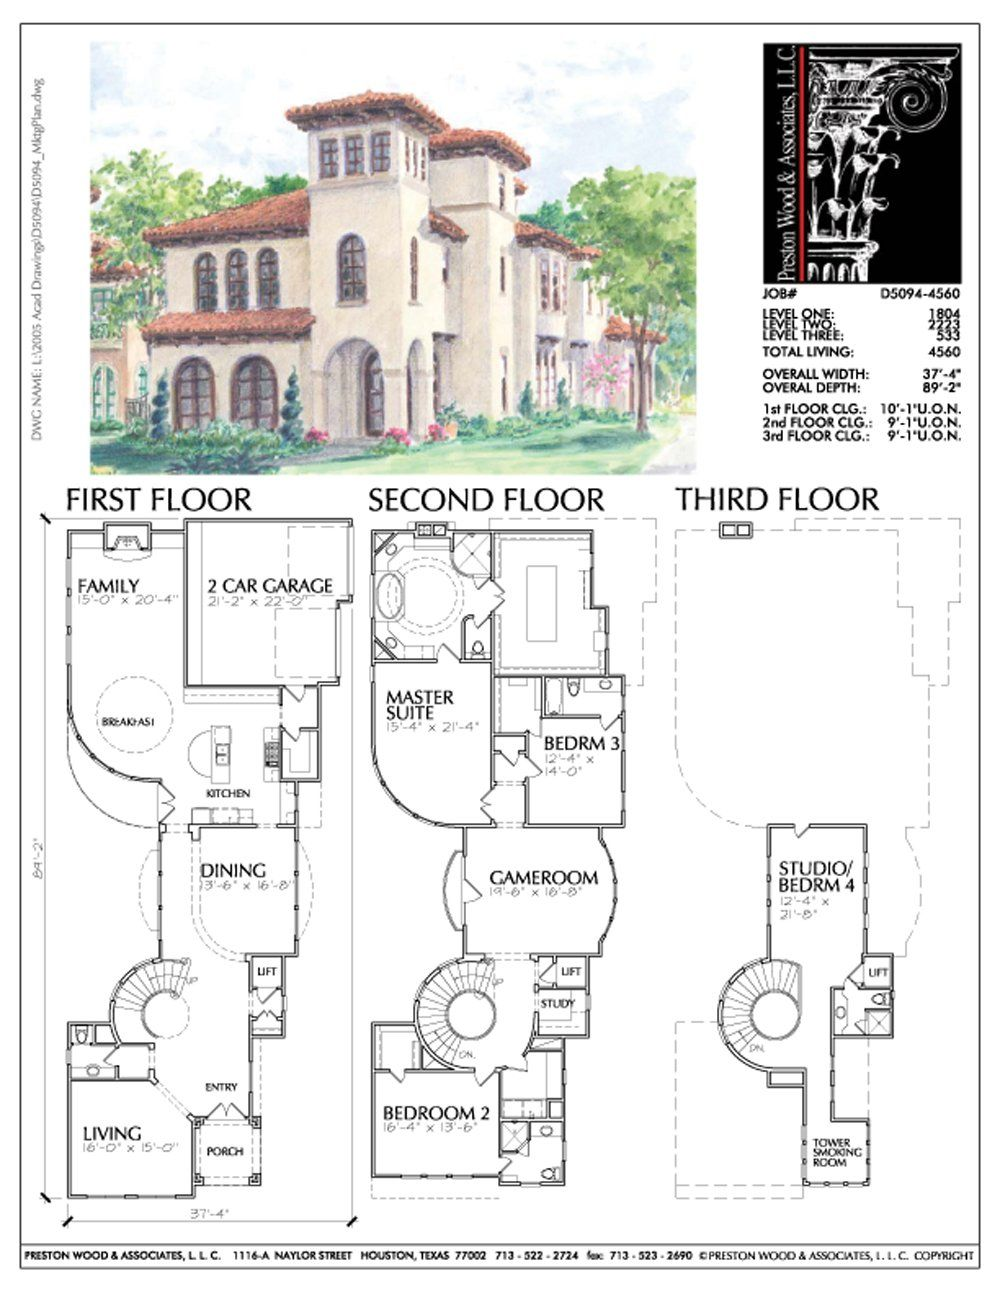 Luxury Home Photos New Custom Homes With Swimming Pool 2 Story Floor Preston Wood Associates Spanish Style Homes Sims House Plans Mansion Floor Plan